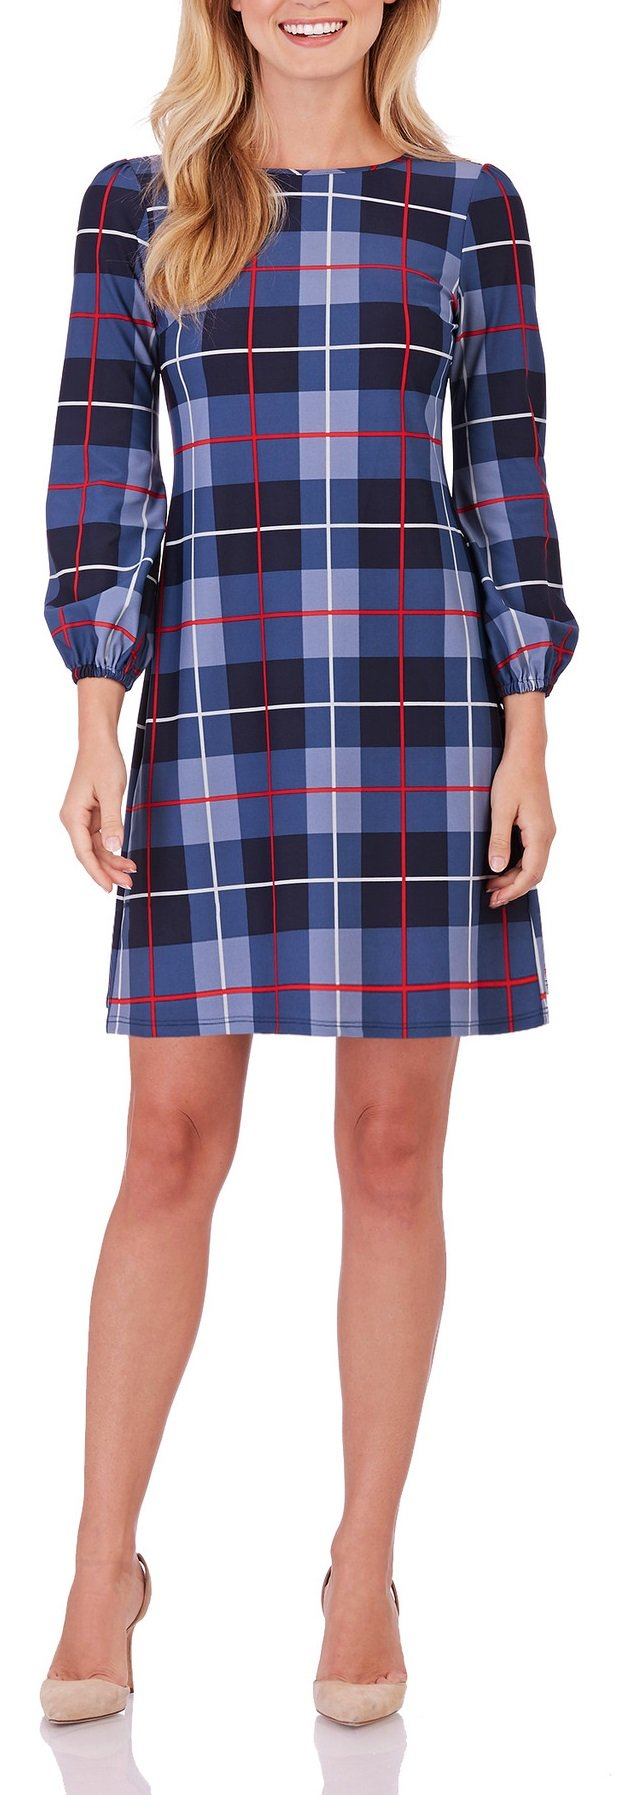 Jude Connally Chloe Woman's Dress in Plaid Midnight (XLg)